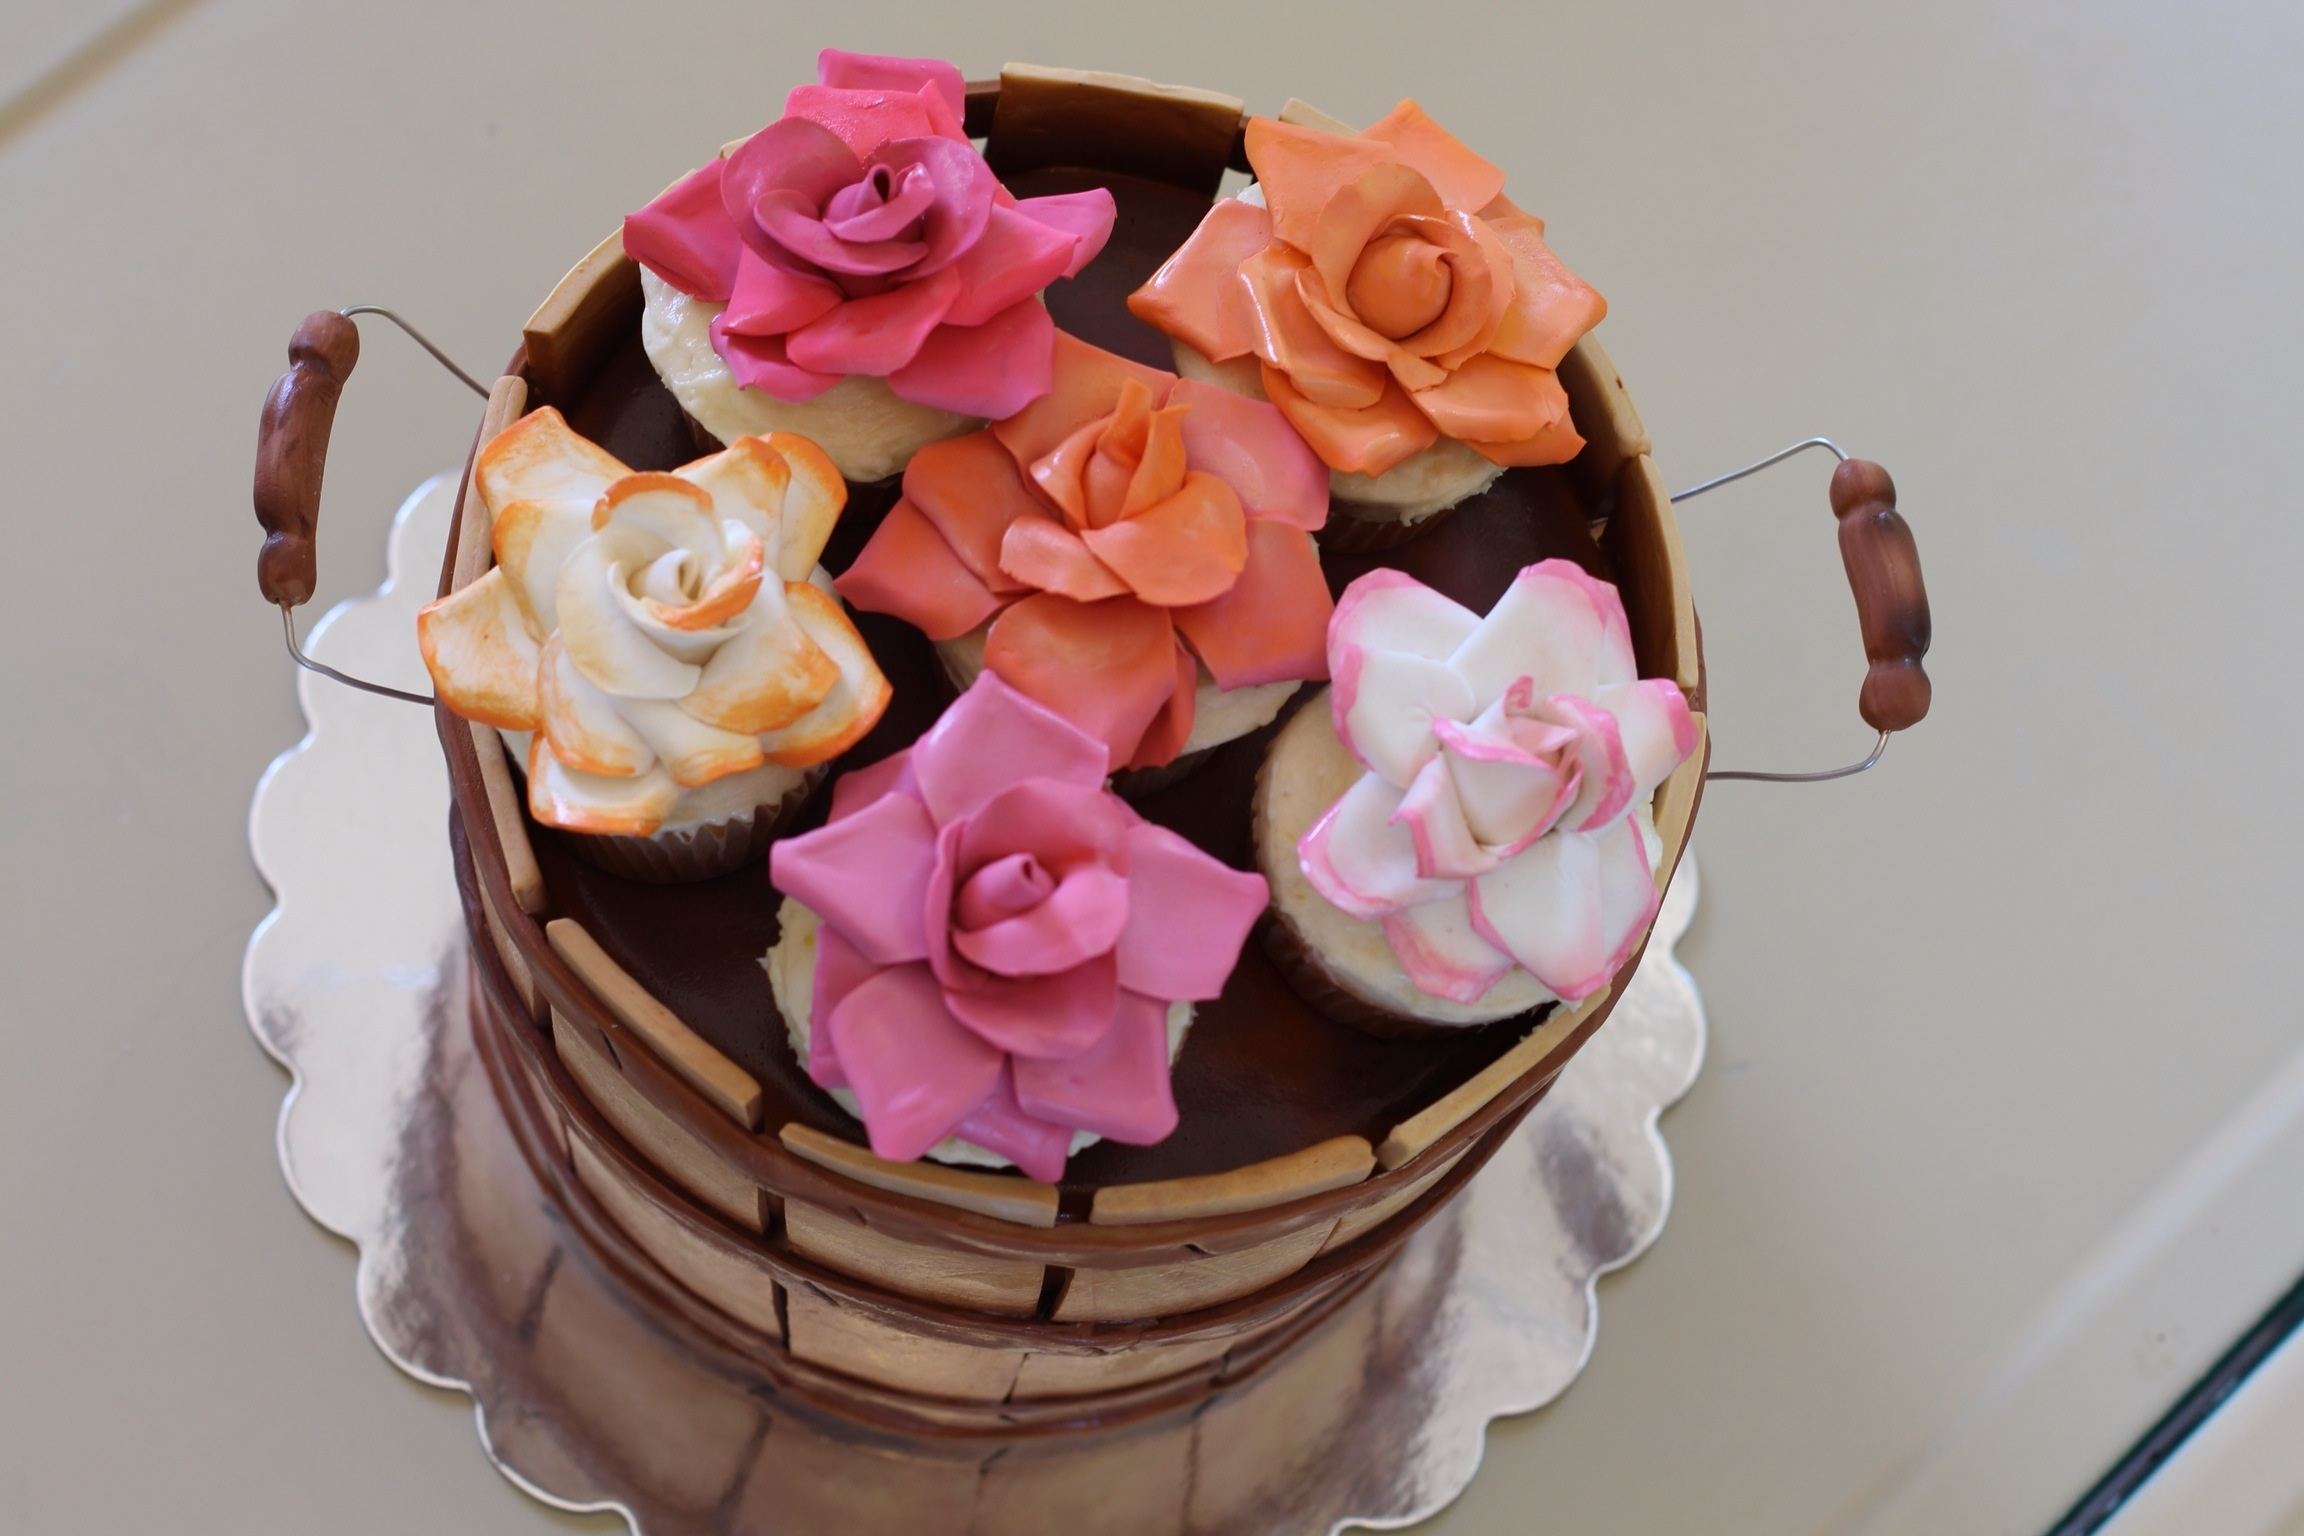 How To Use Cake Art Flower Moulding Paste : Wooden Basket And Flower Cupcake Cake Modeling Chocolate ...